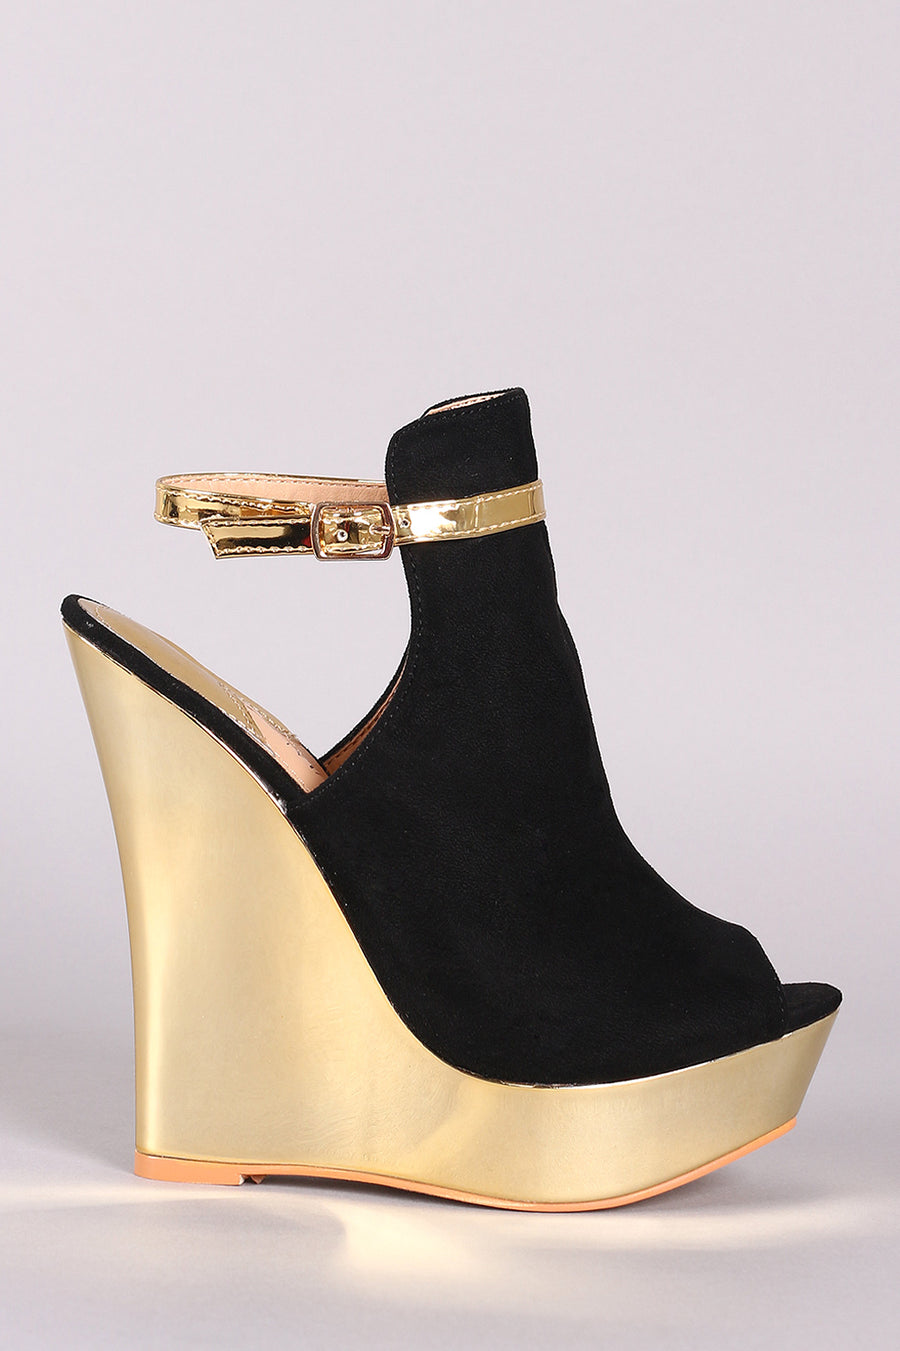 Peep Toe Ankle Strap Mirrored Wedge Heels